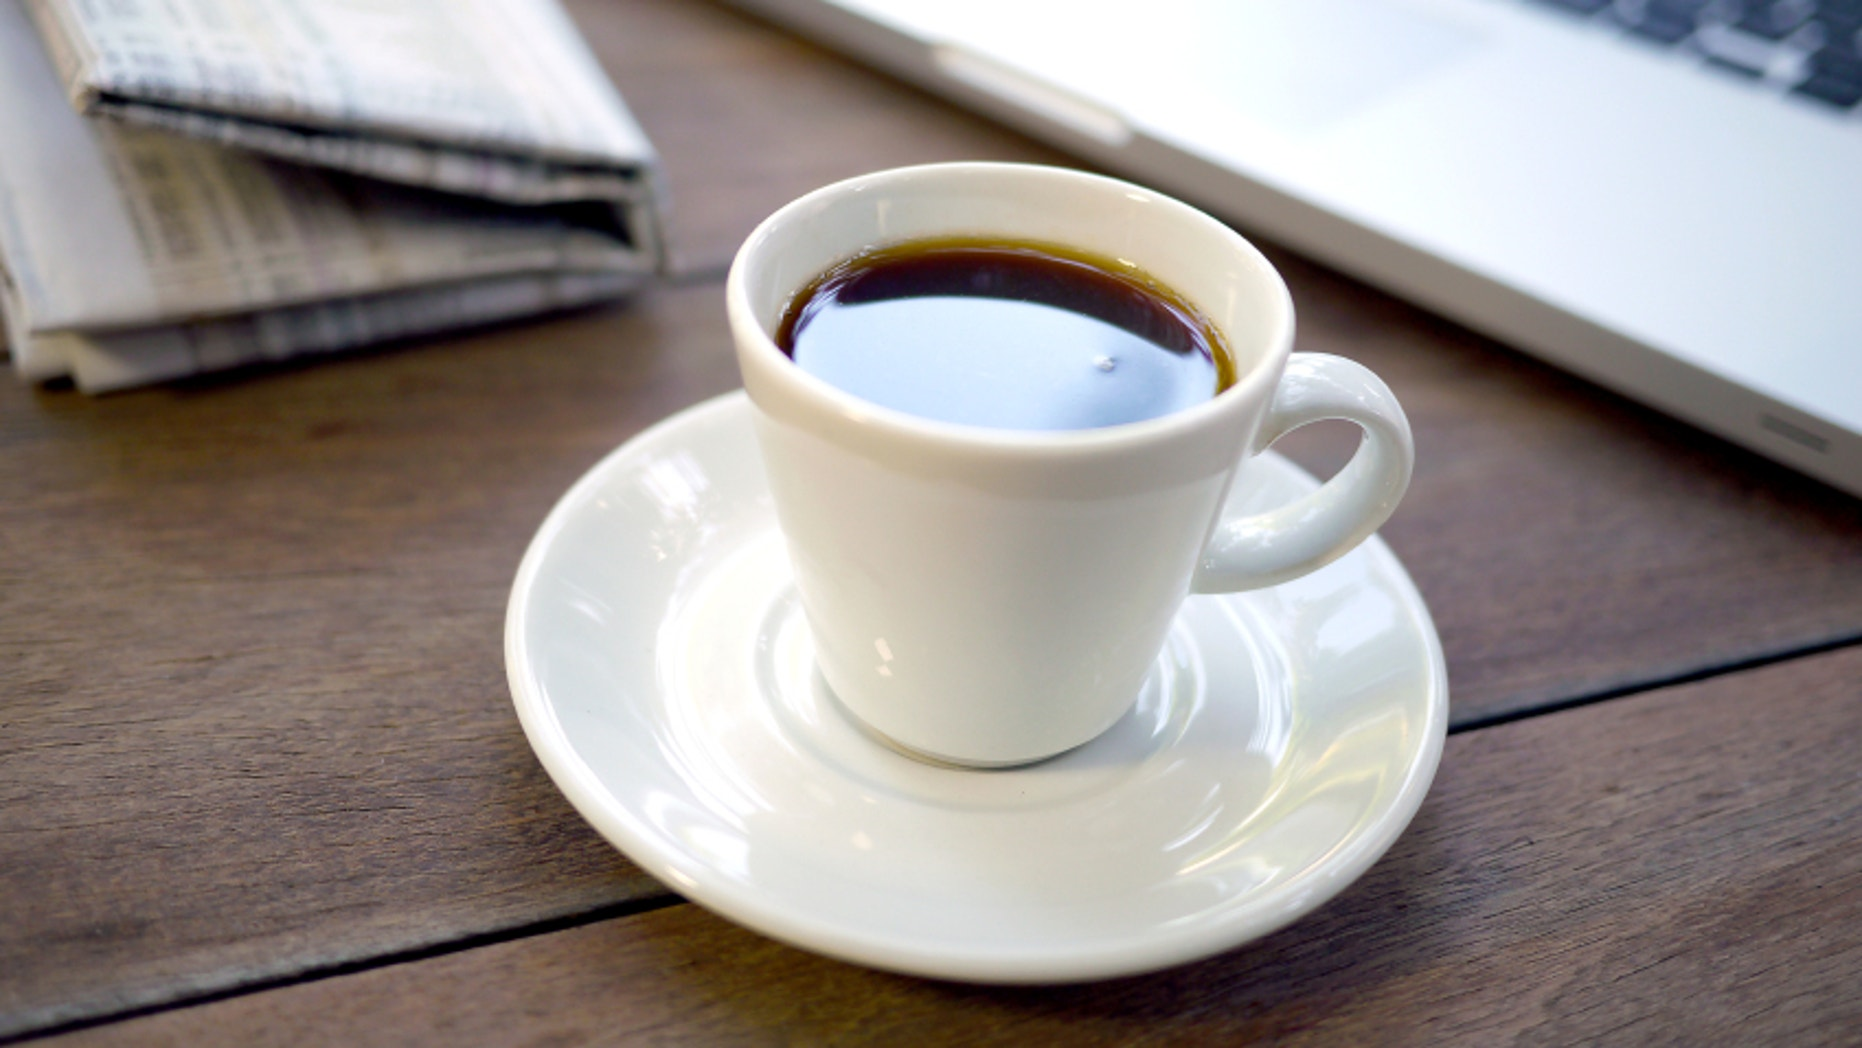 Drink 3 Cups of Coffee Daily to Halve Liver Cancer Risk